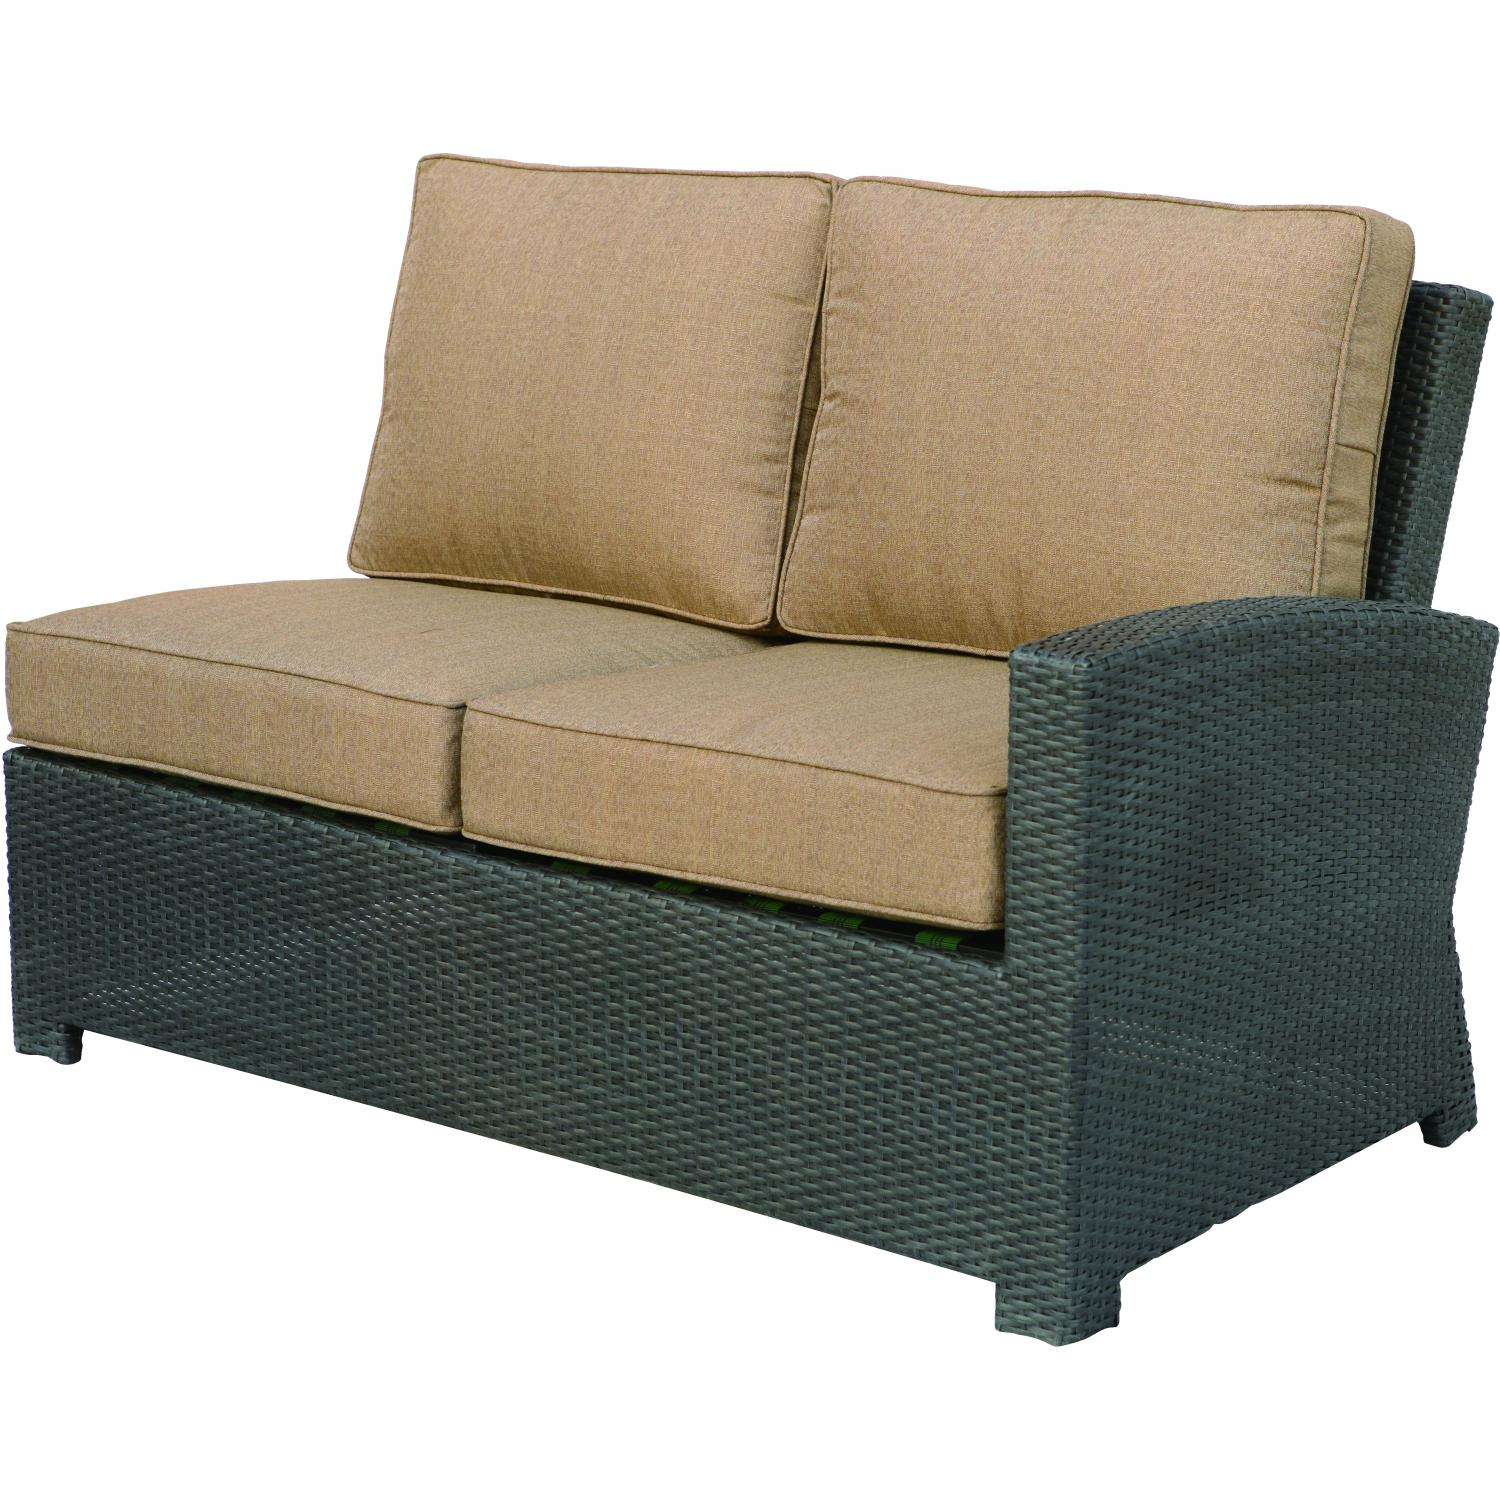 Attractive Patio Sofas Loveseats U S A Canada